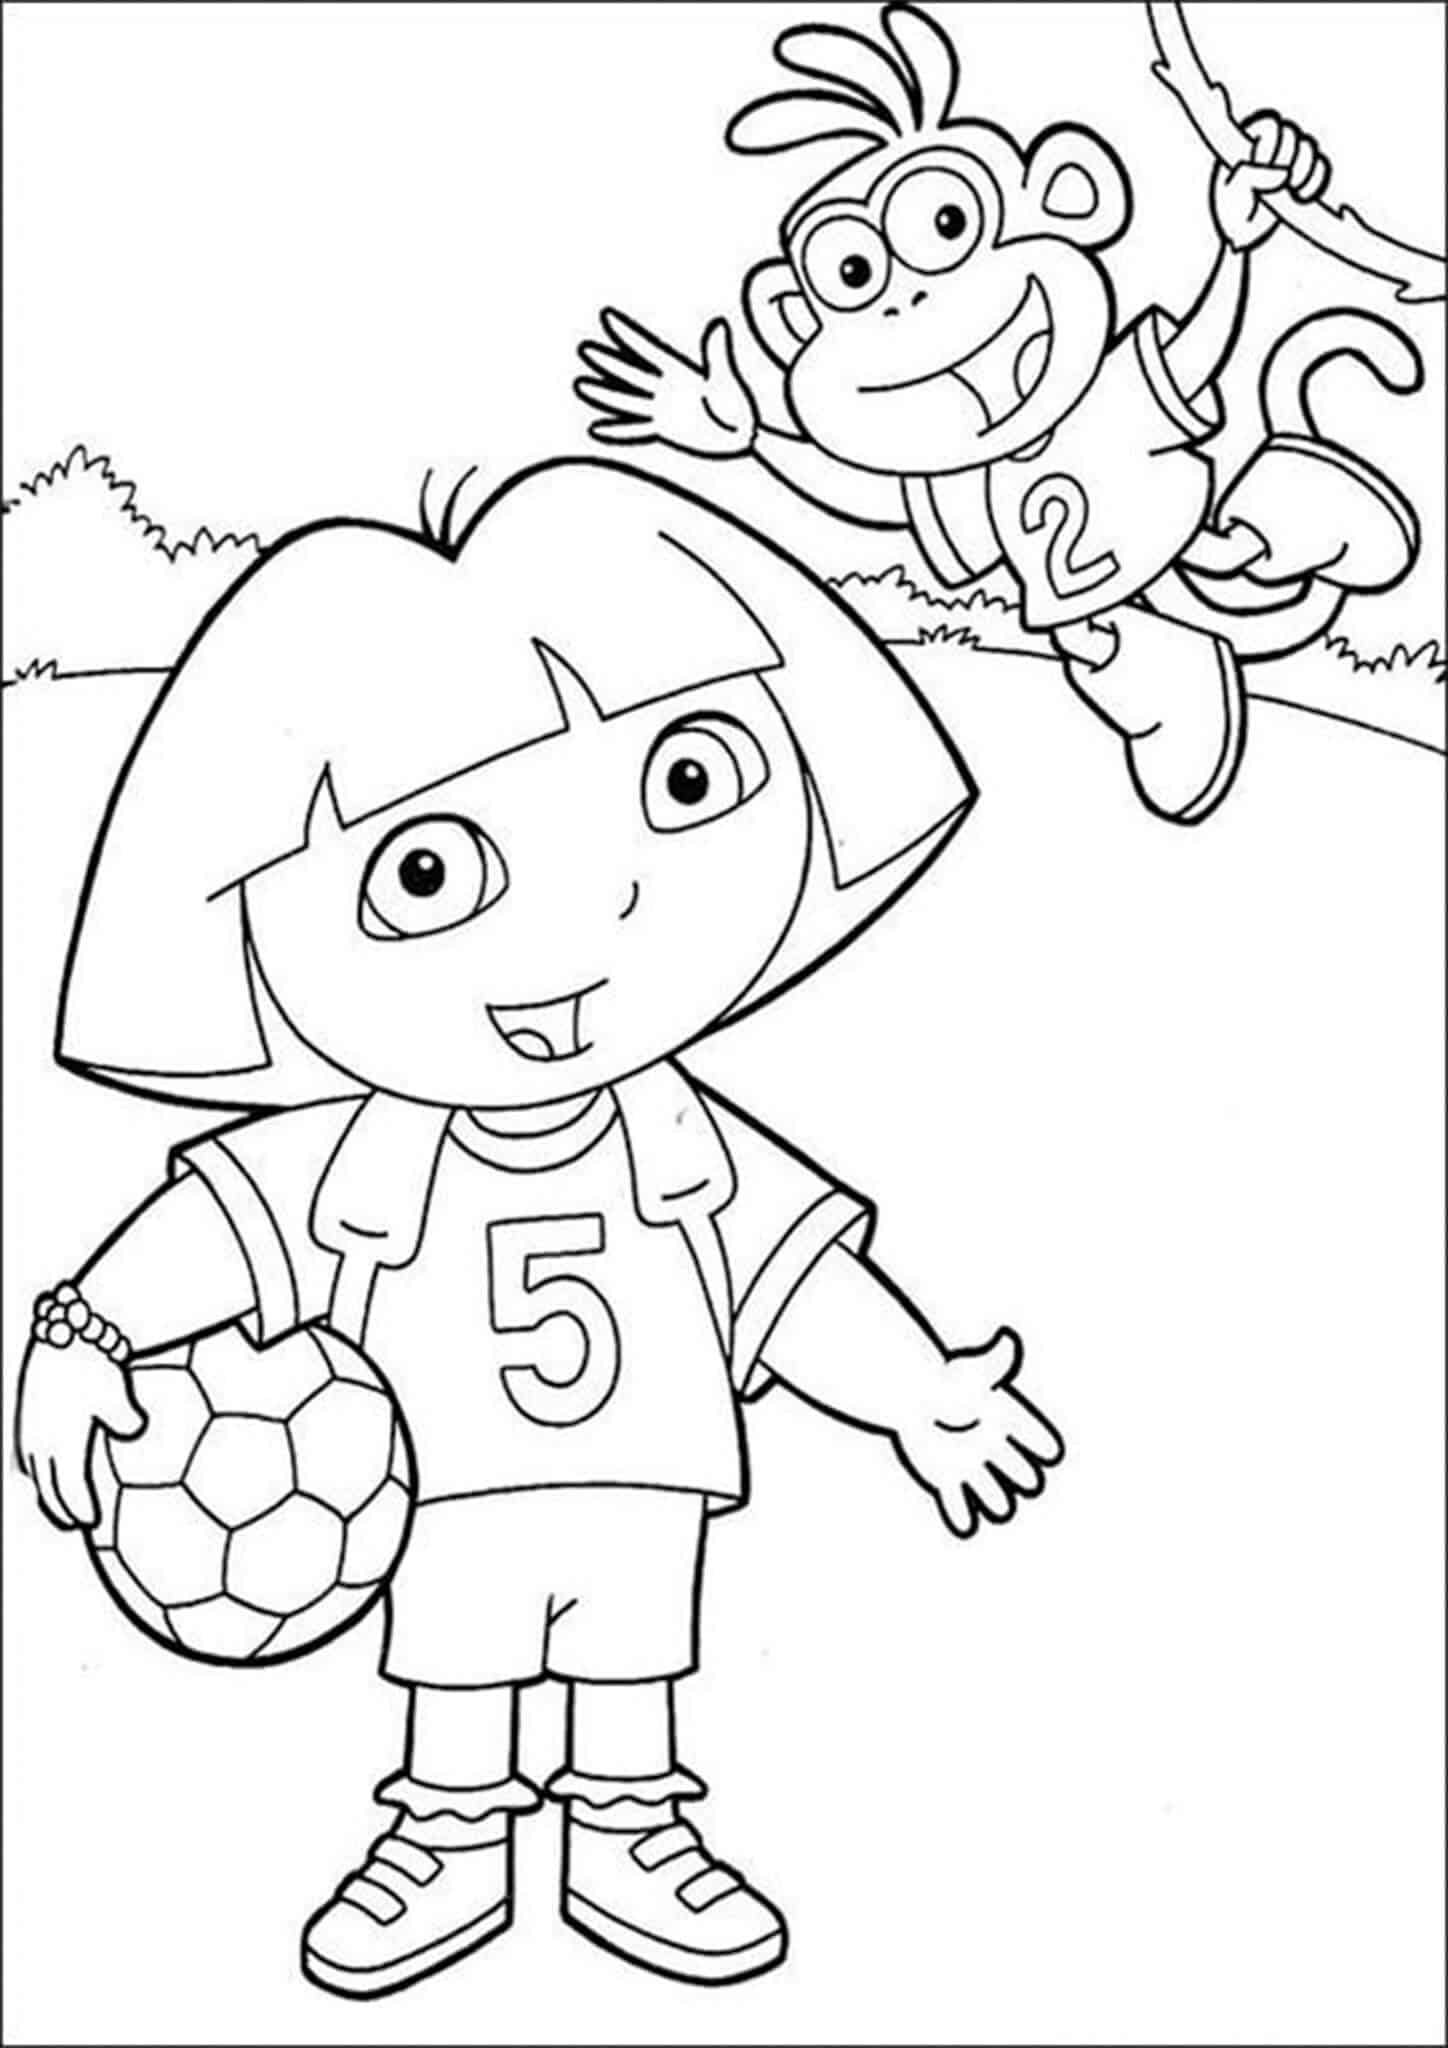 Fun Dora coloring pages for your little one. They are free and easy to print. The collection is varied with different skill levels